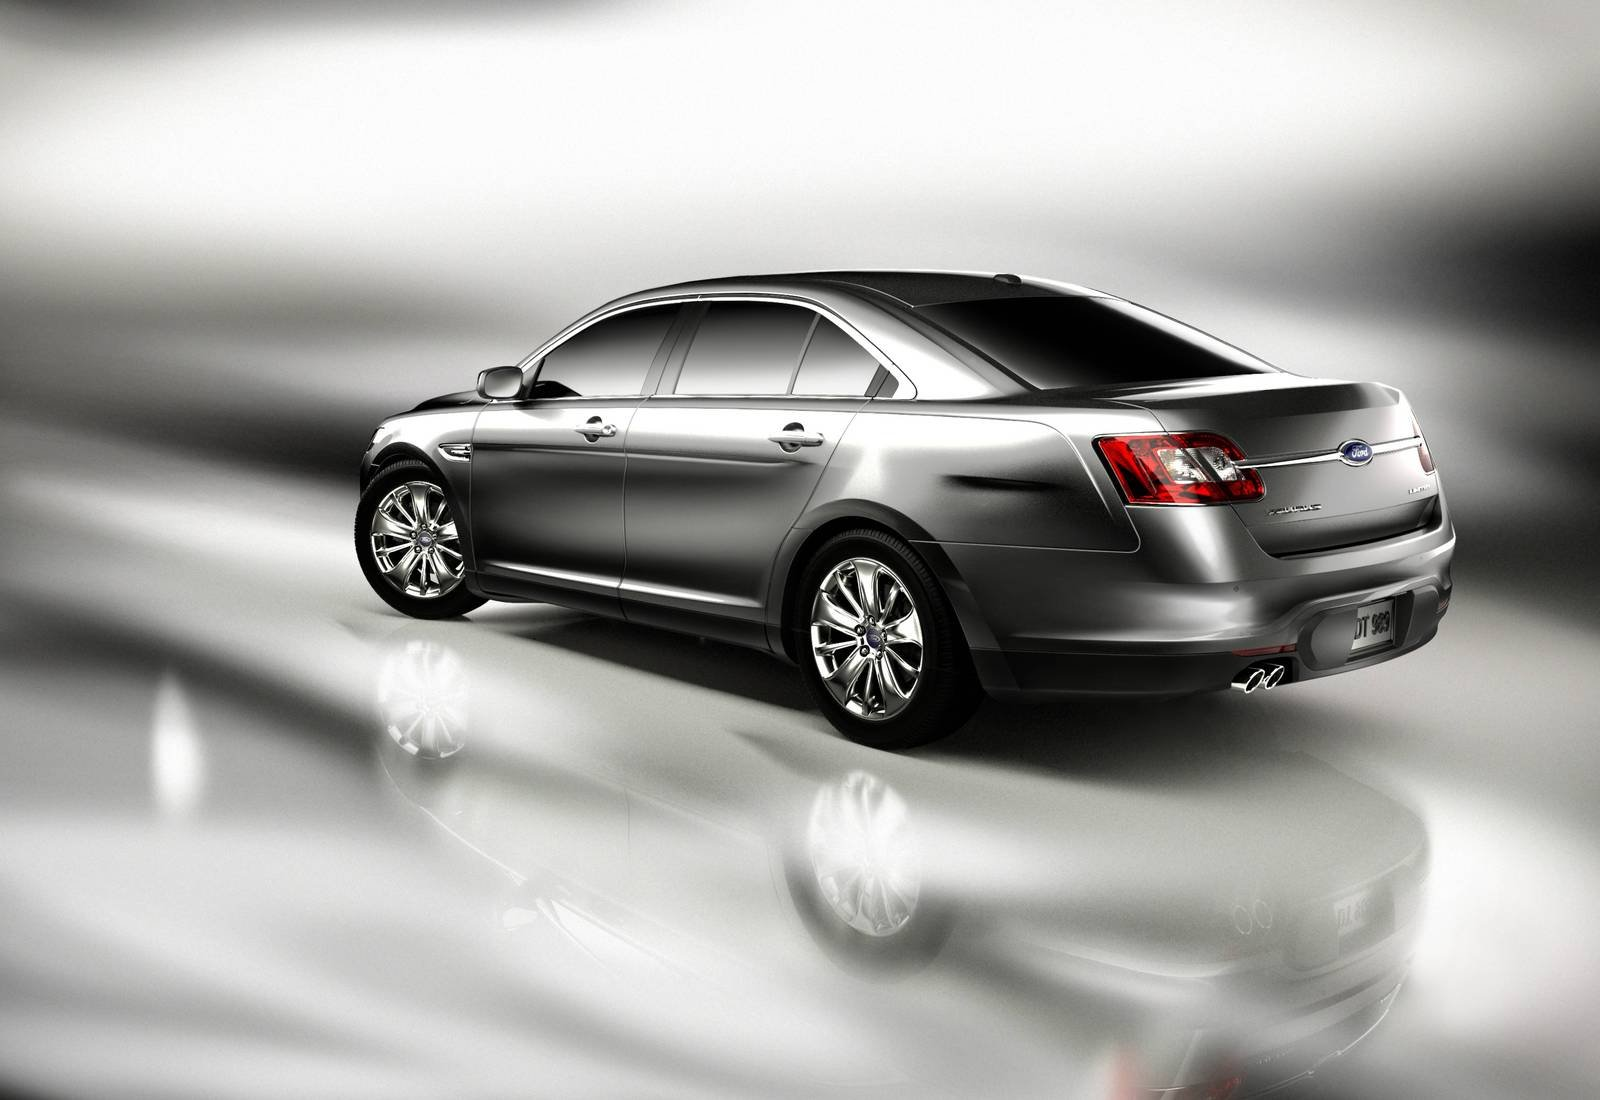 2010 ford taurus sho picture 306584 car review top speed. Black Bedroom Furniture Sets. Home Design Ideas